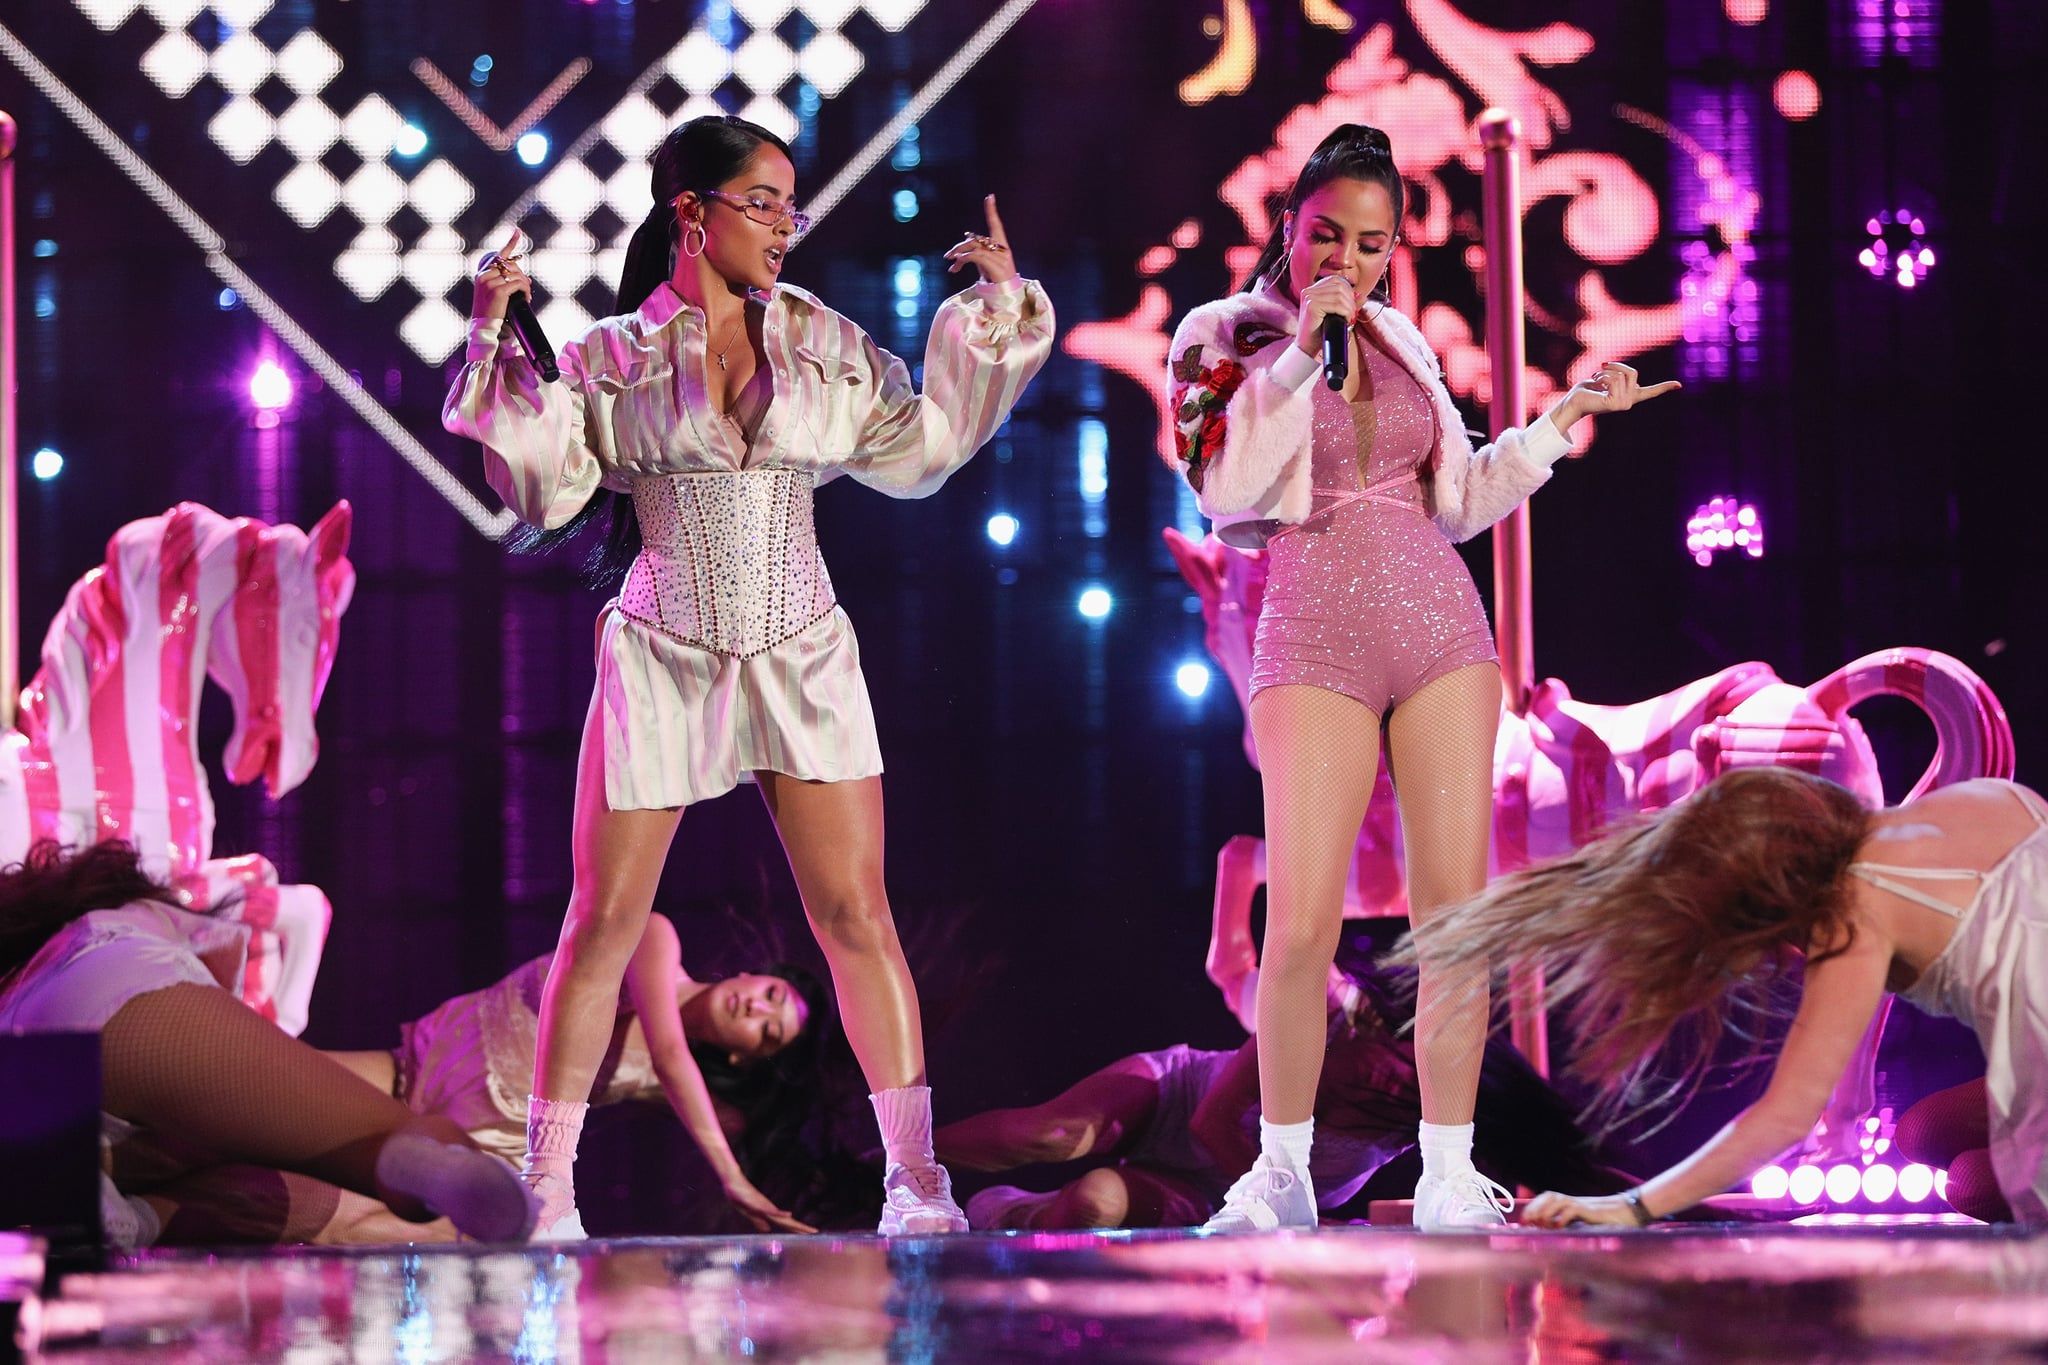 MEXICO CITY, MEXICO - JUNE 02:  Becky G and Natti Natasha perform on stage during the MIAW Awards 2018 at Arena Ciudad de Mexico on June 2, 2018 in Mexico City, Mexico  (Photo by Victor Chavez/Getty Images)